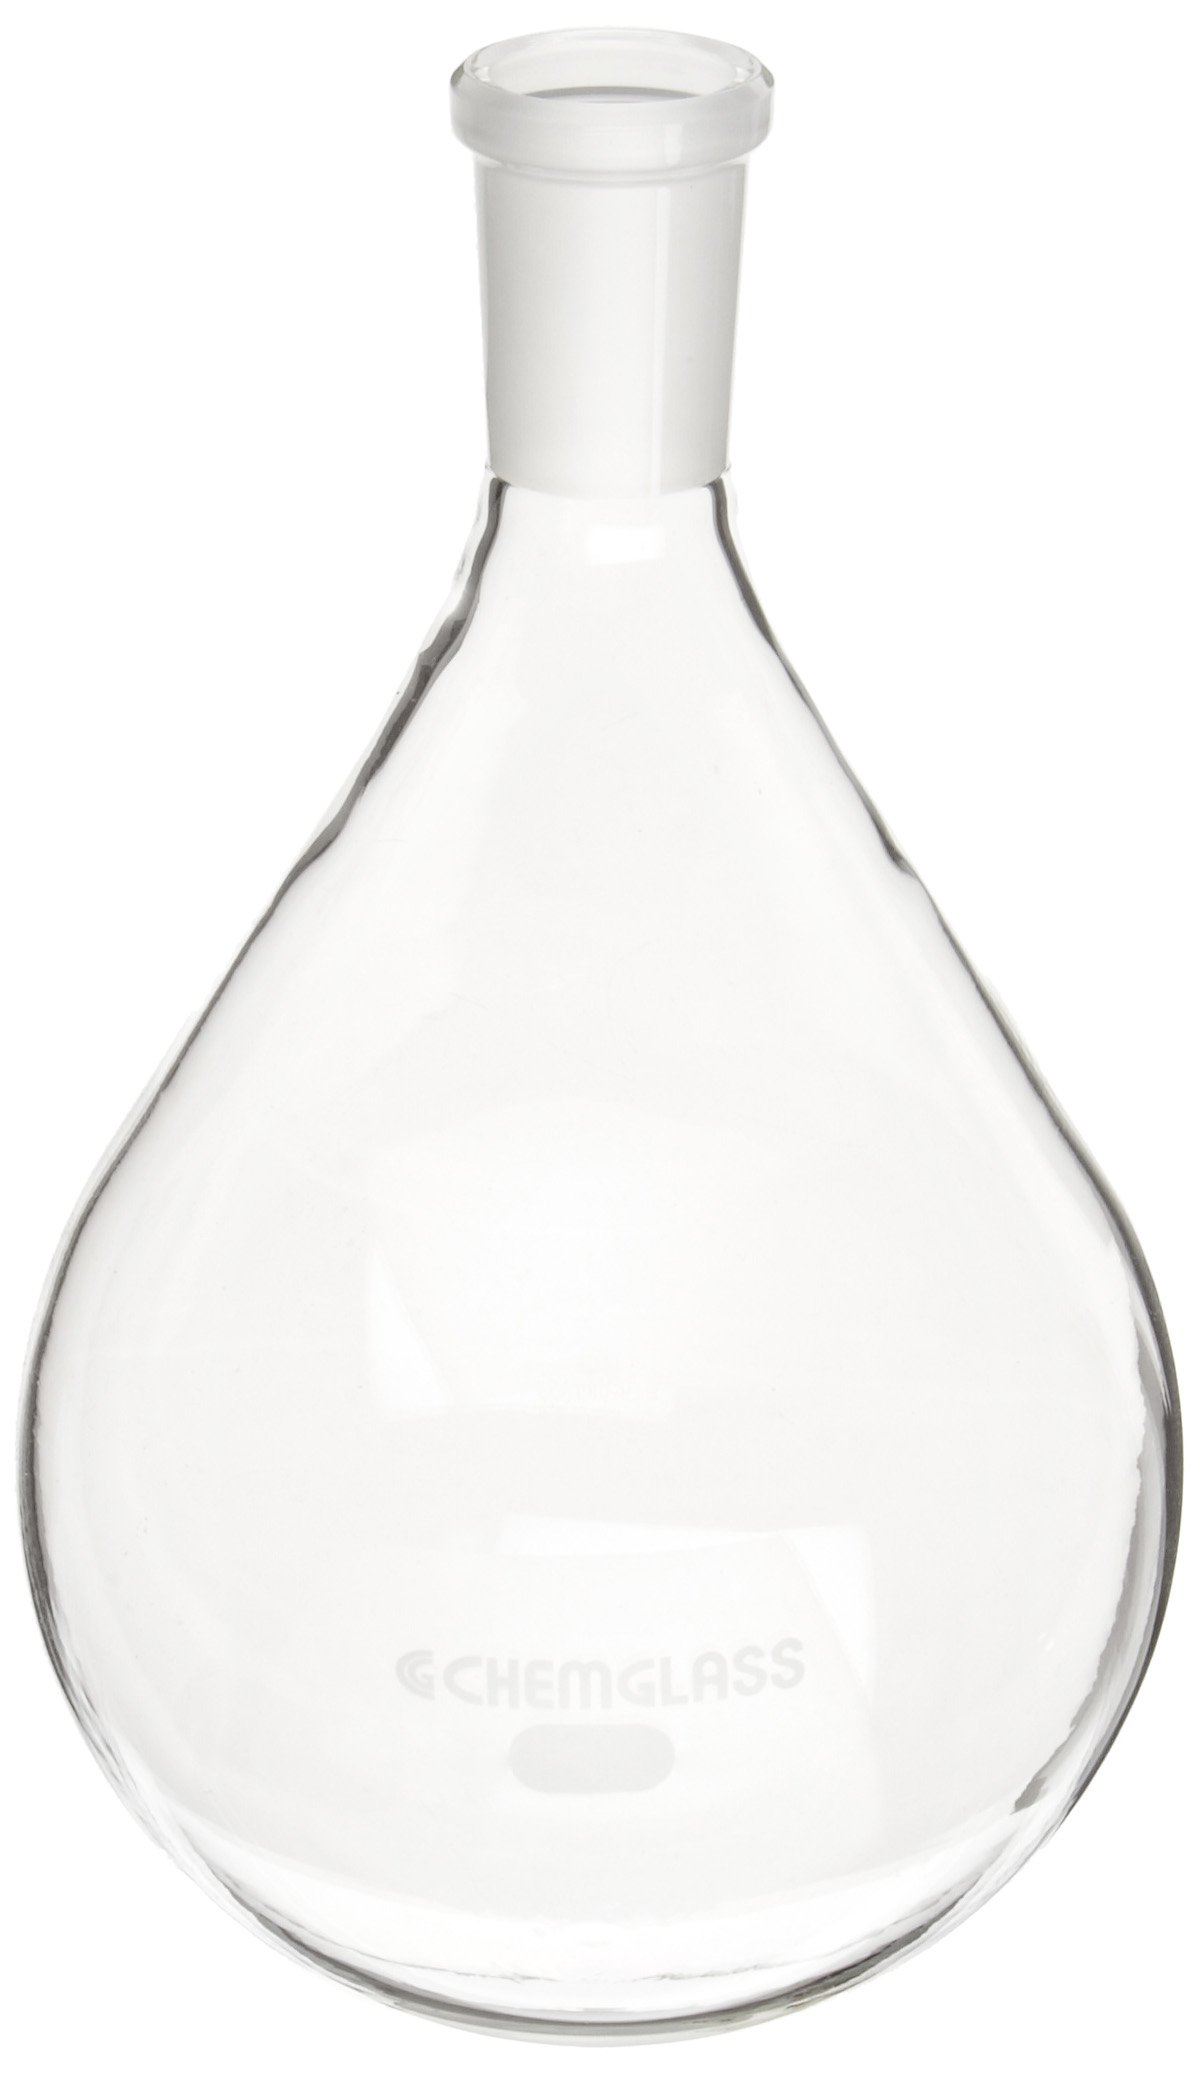 Chemglass CG-1512-09 Glass 1000mL Heavy Wall Single Neck Round Bottom Evaporating Flask, with 24/40 Outer Joint